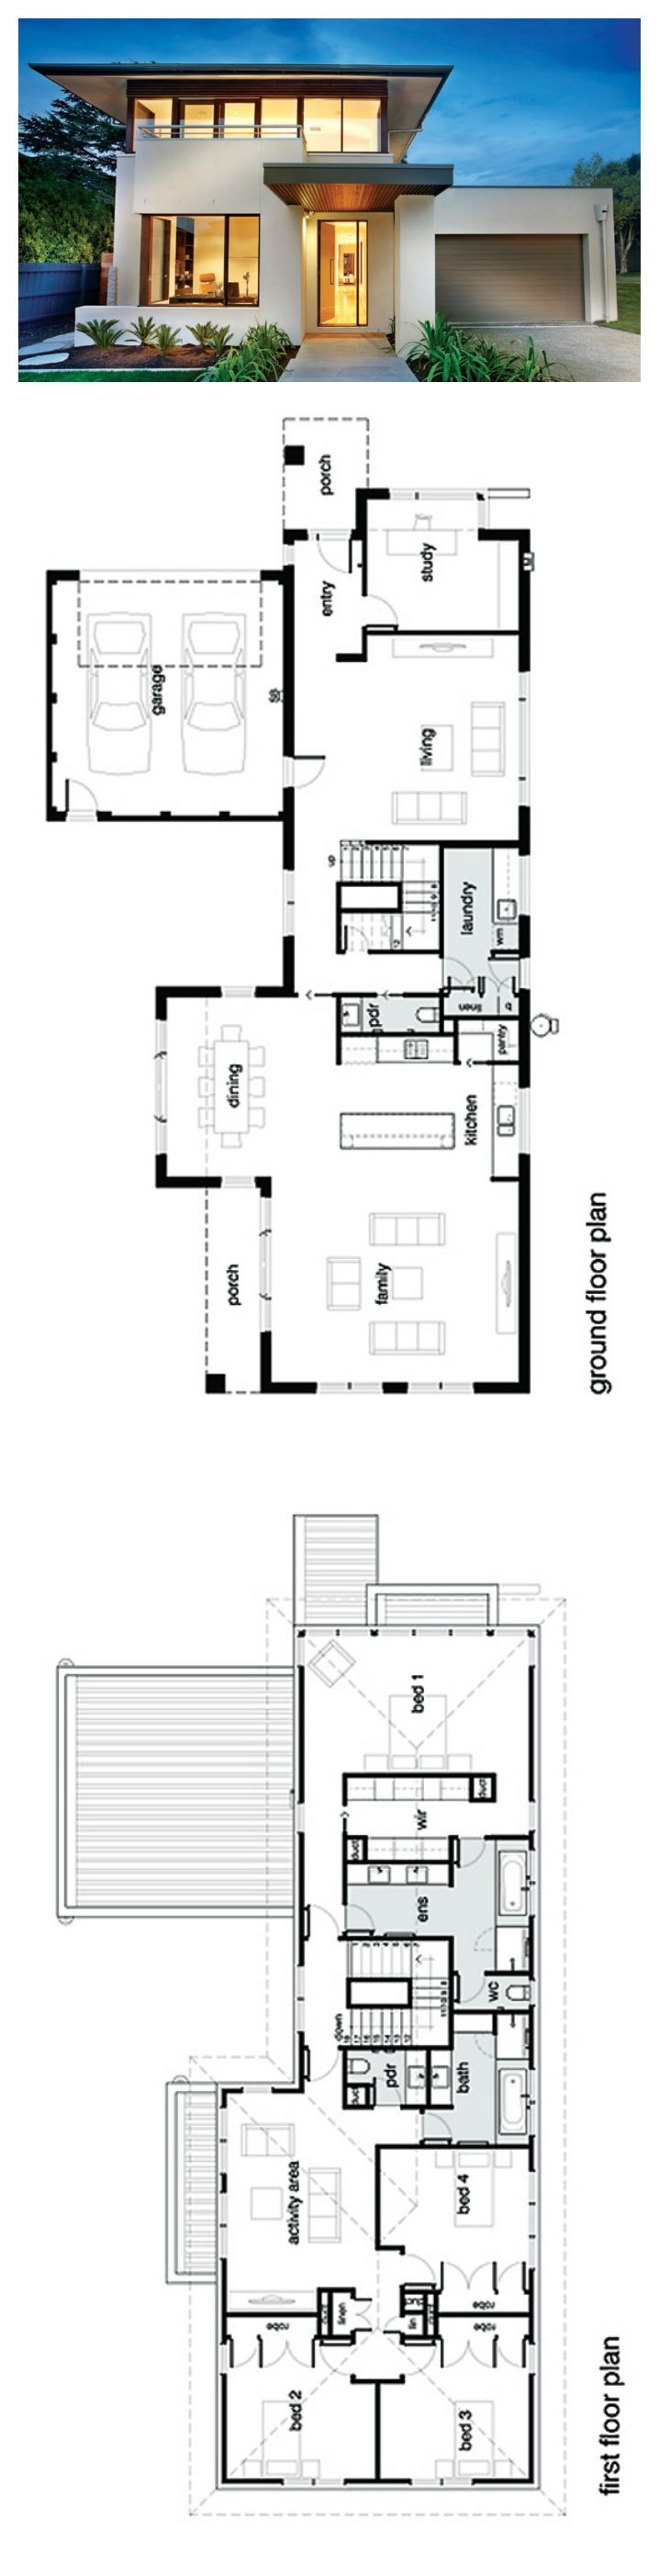 New House Design Of Best 25 Modern House Plans Ideas On Pinterest